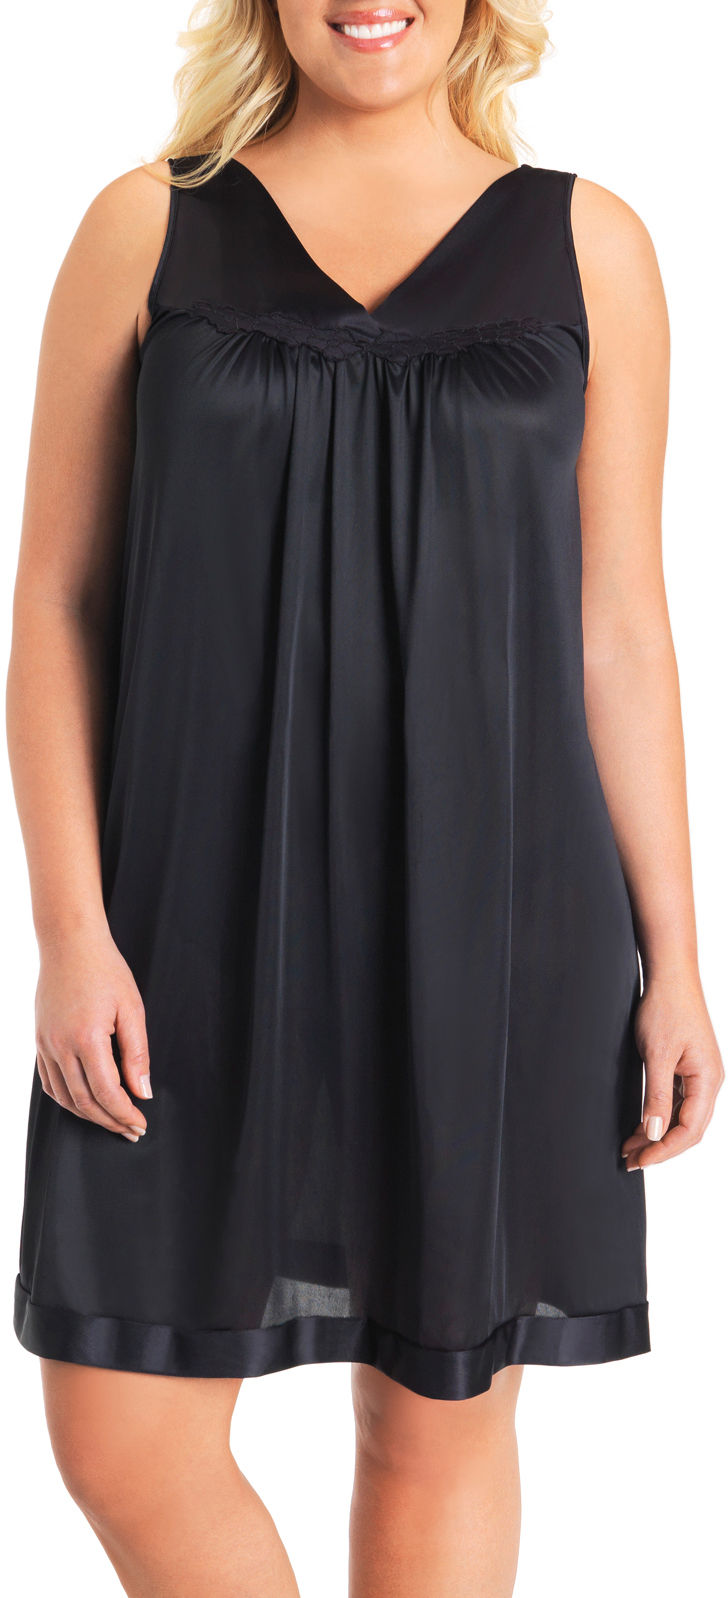 Vanity Fair Coloratura Sleeveless Nightgown - 30107 Midnight Black ...